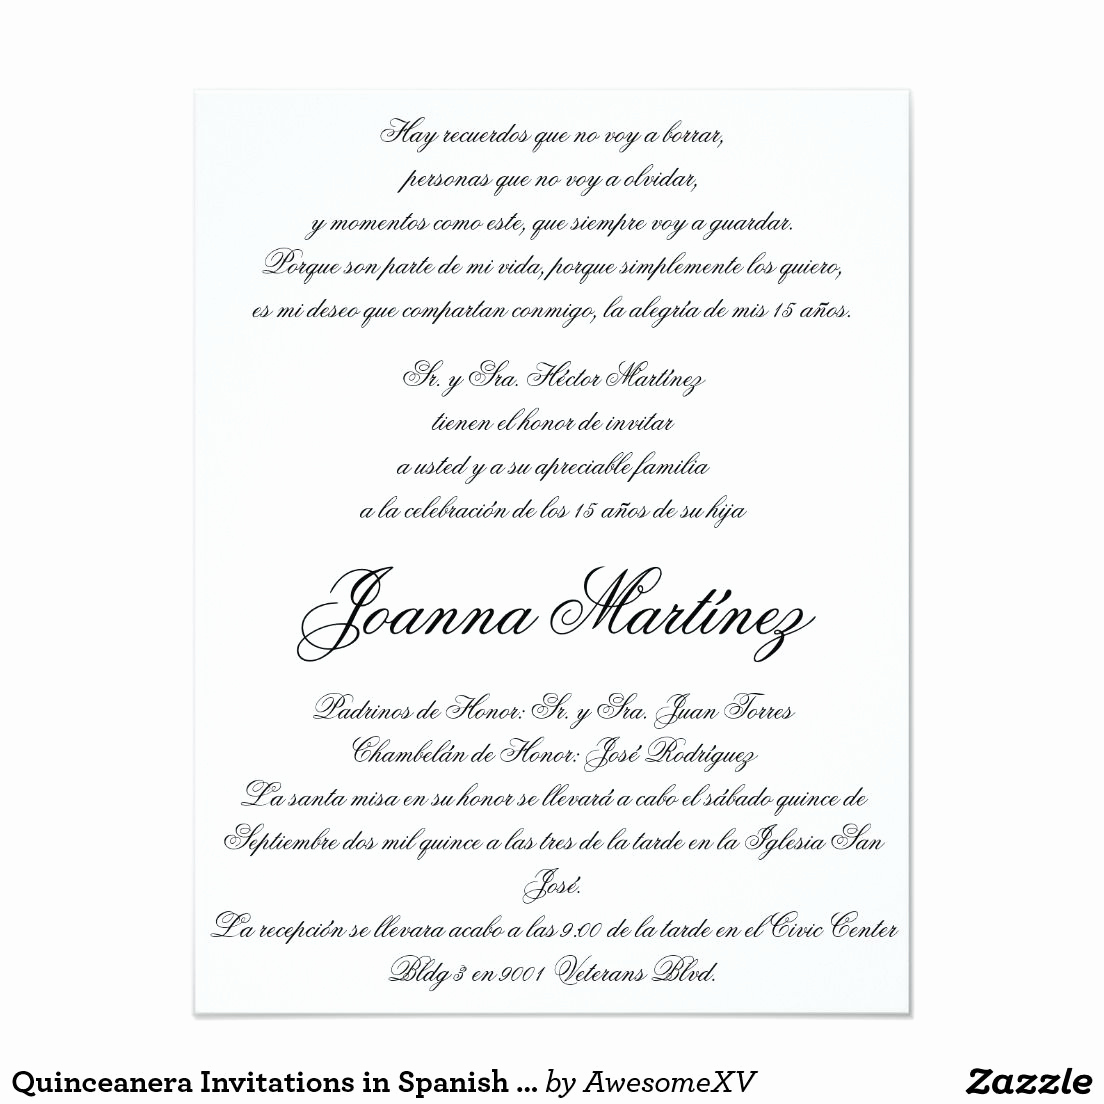 Quinceanera Invitation Wording Samples Fresh Quinceanera Invitations In Spanish 4 25 X 5 5